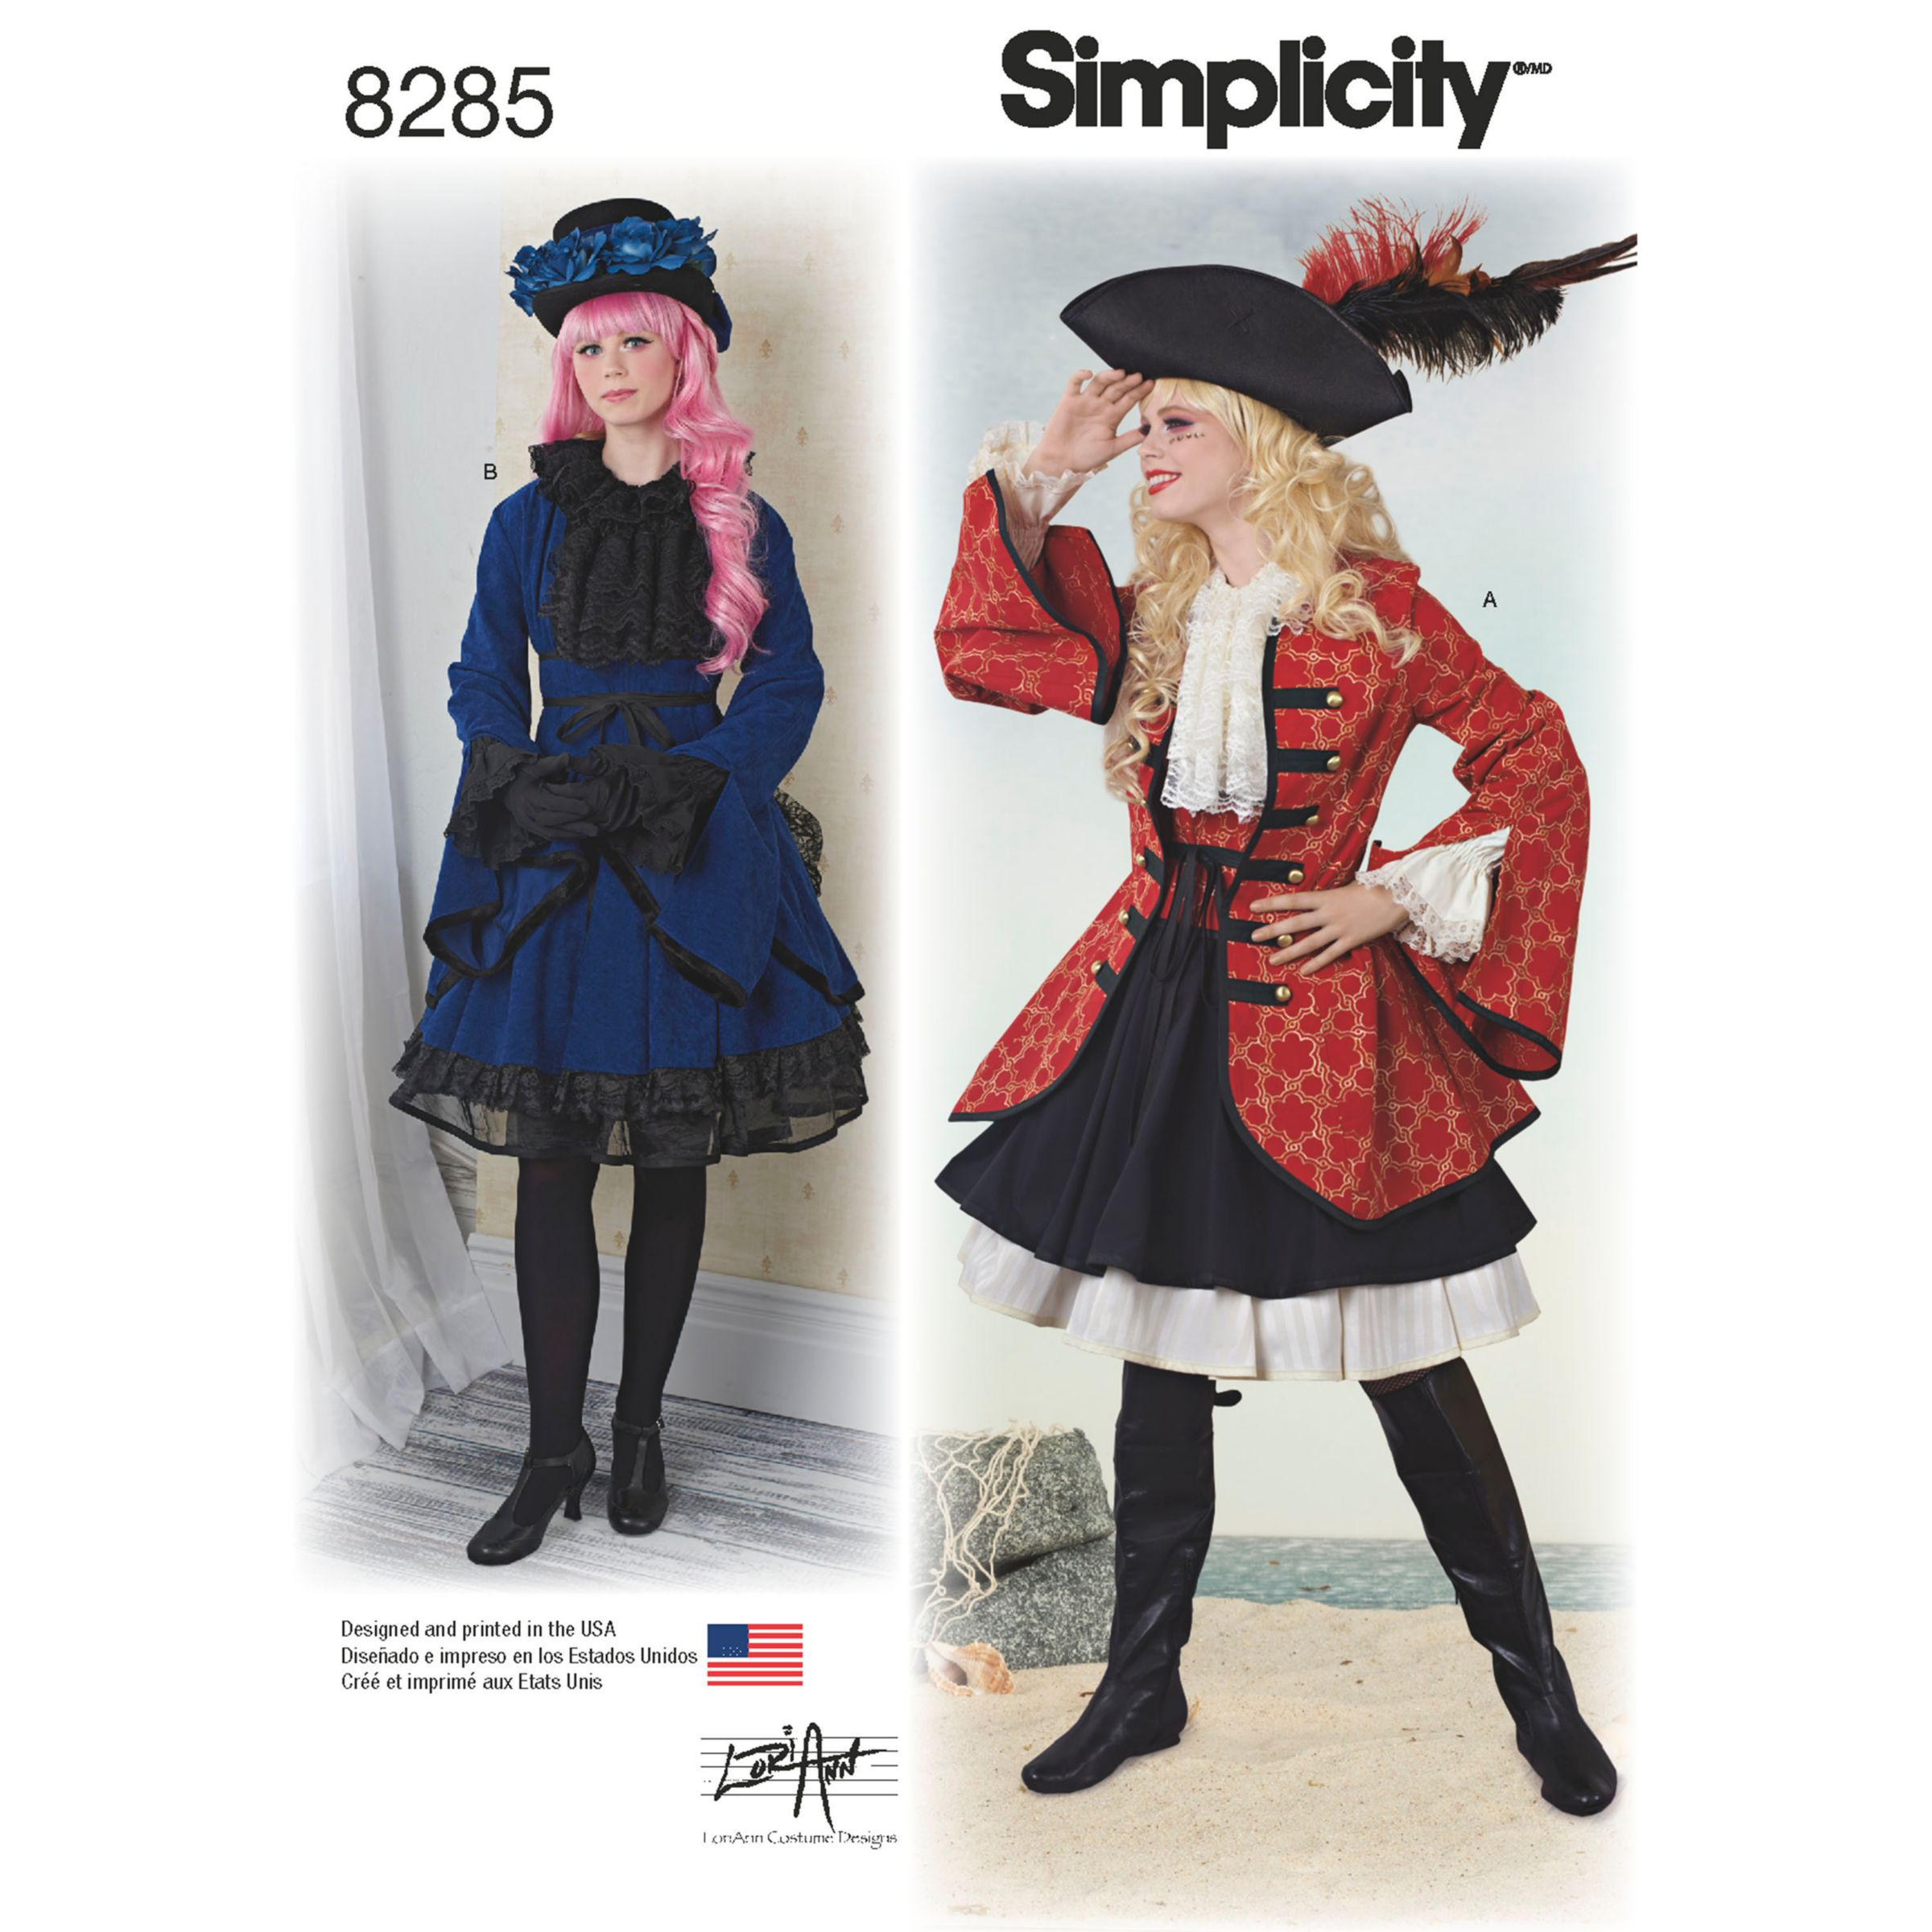 Simplicity Simplicity Misses' Women's Costumes from Lori Ann Costume Design Sewing Pattern, 8285